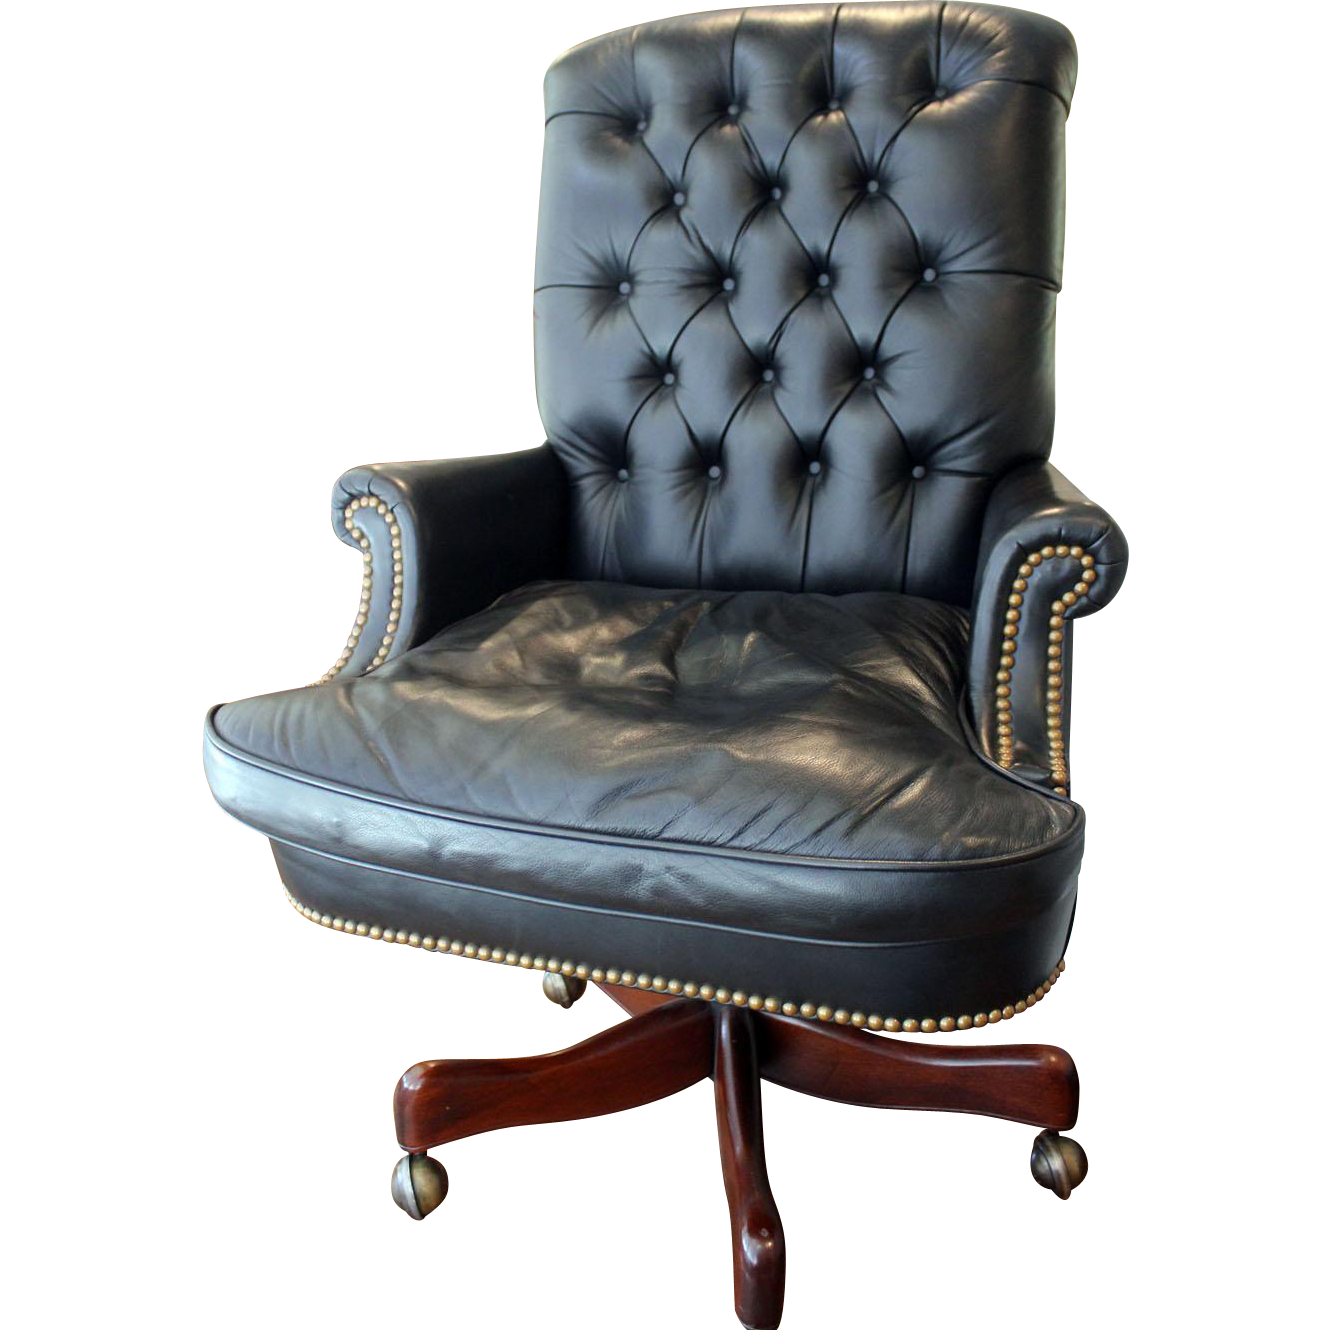 Vintage leather swivel chair - Hickory Leather Tufted Executive Swivel Chair